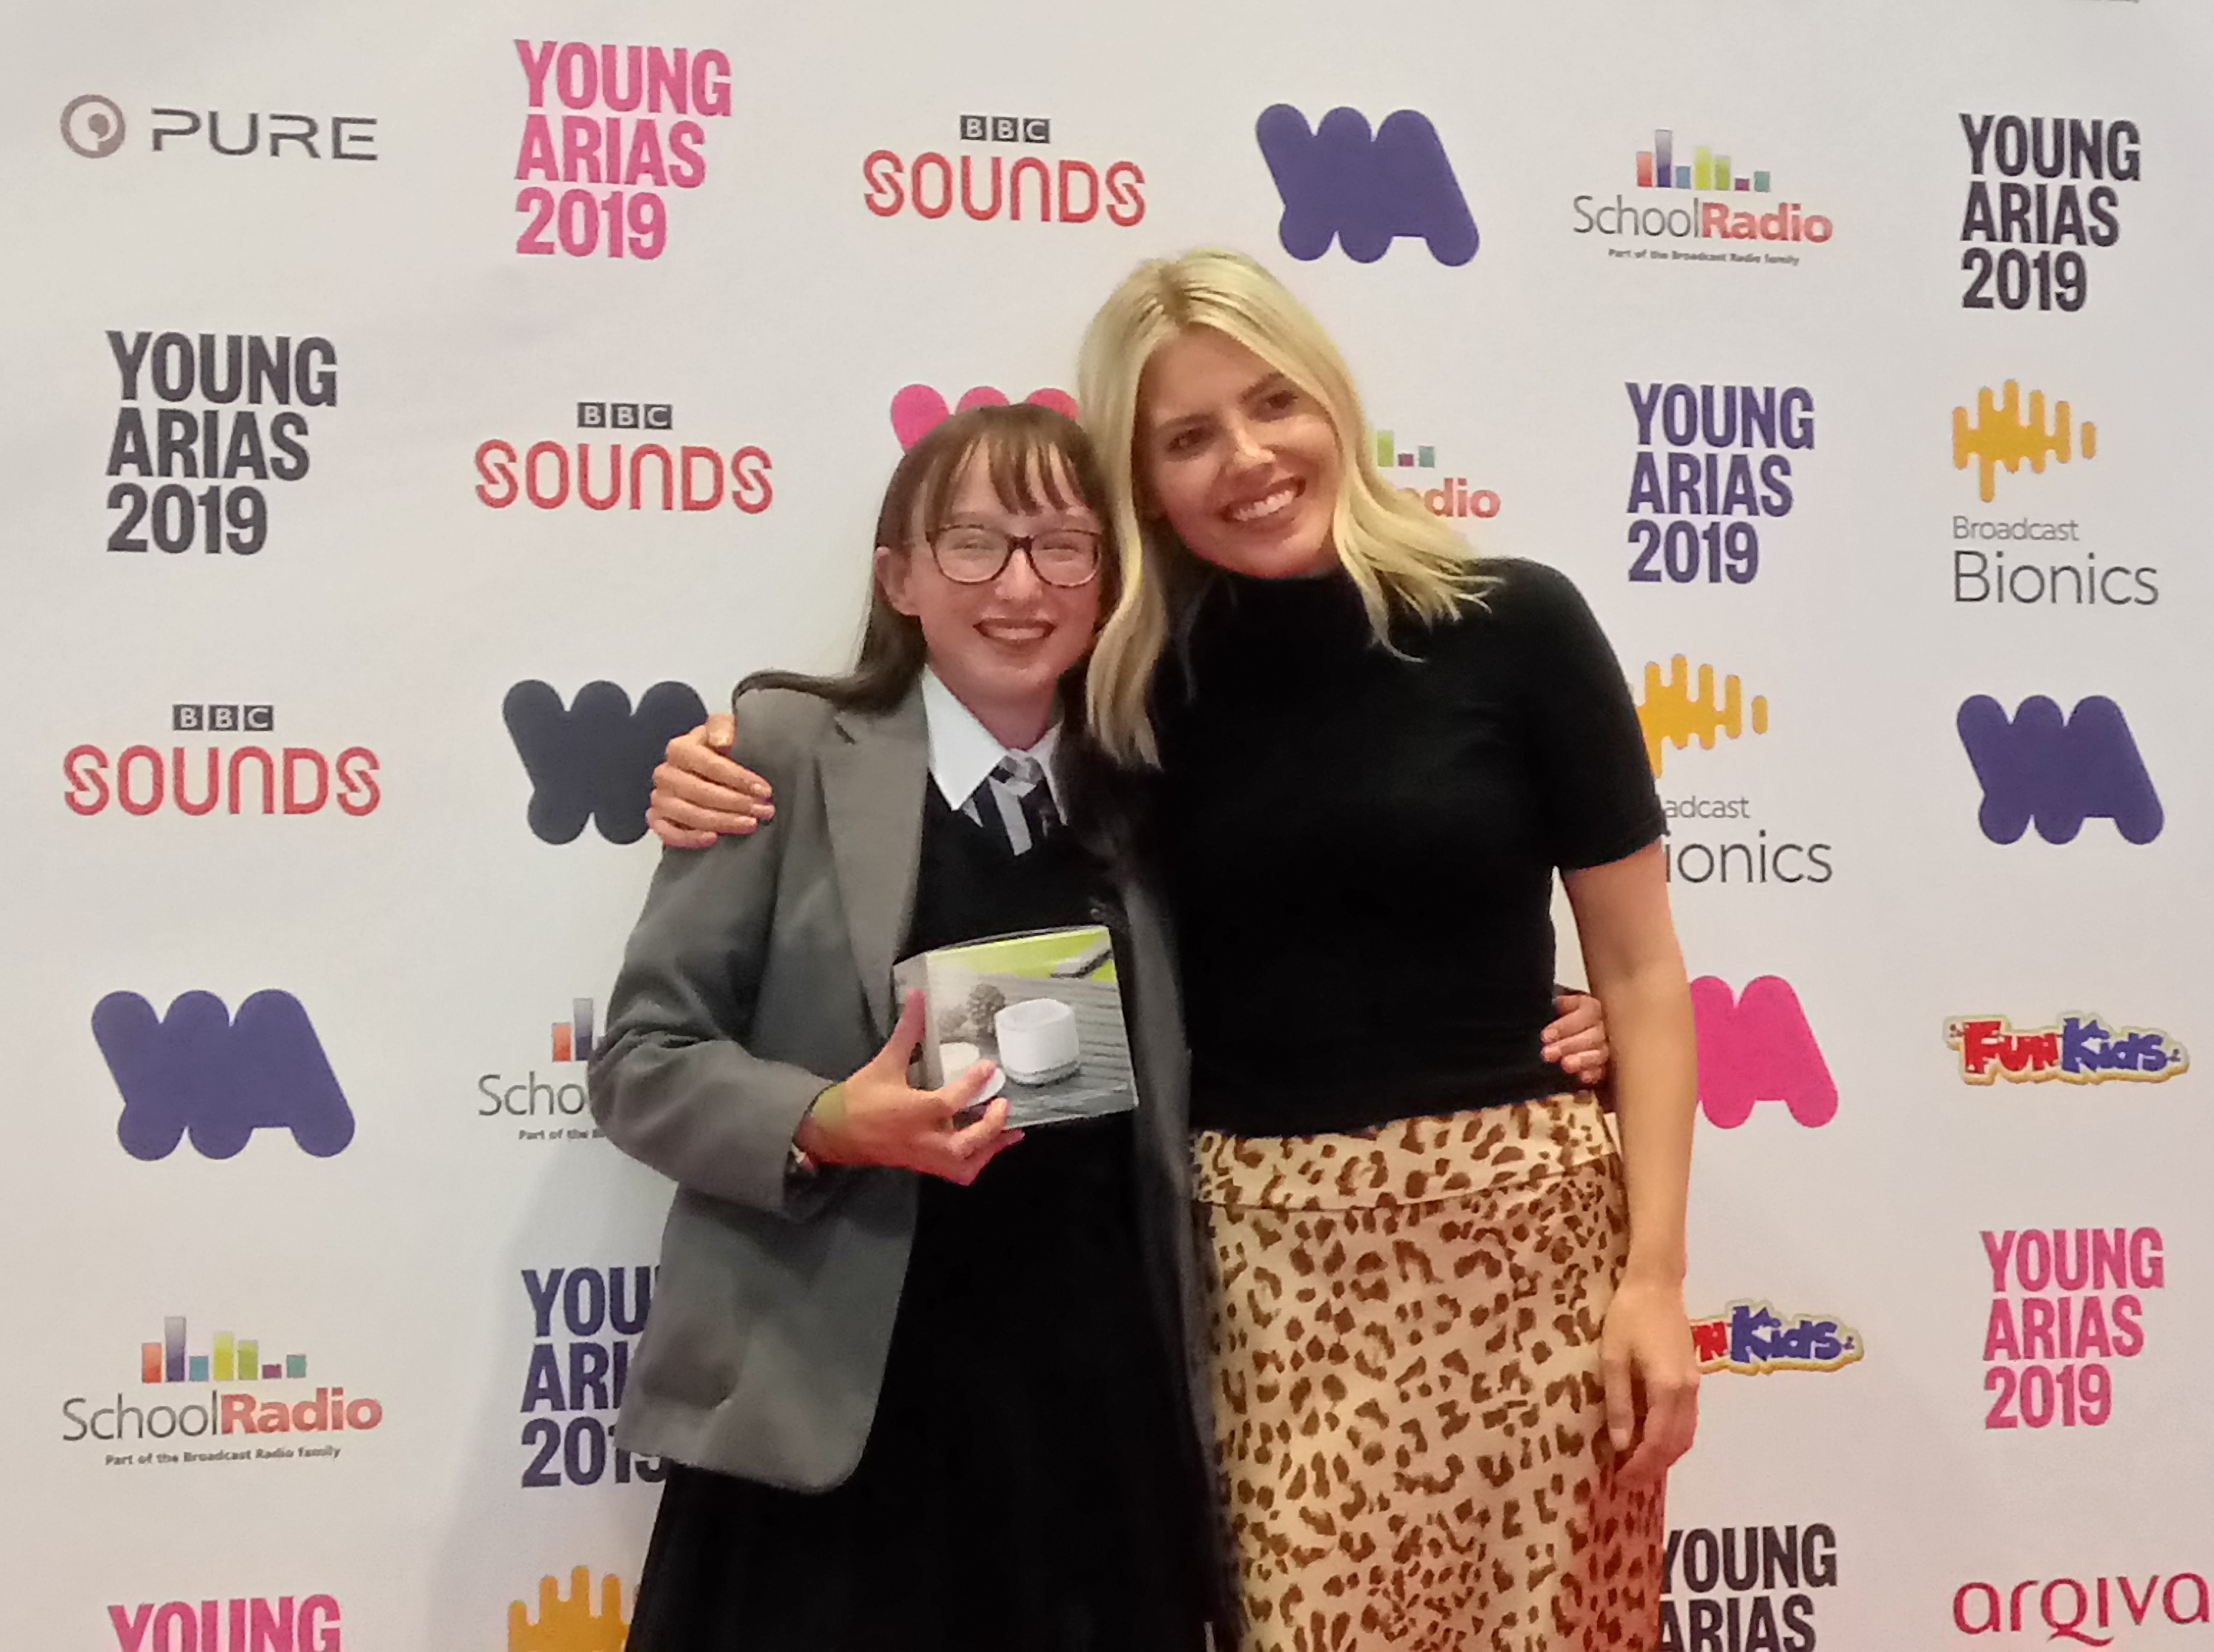 Young Arias BBC Sounds Talent Winner